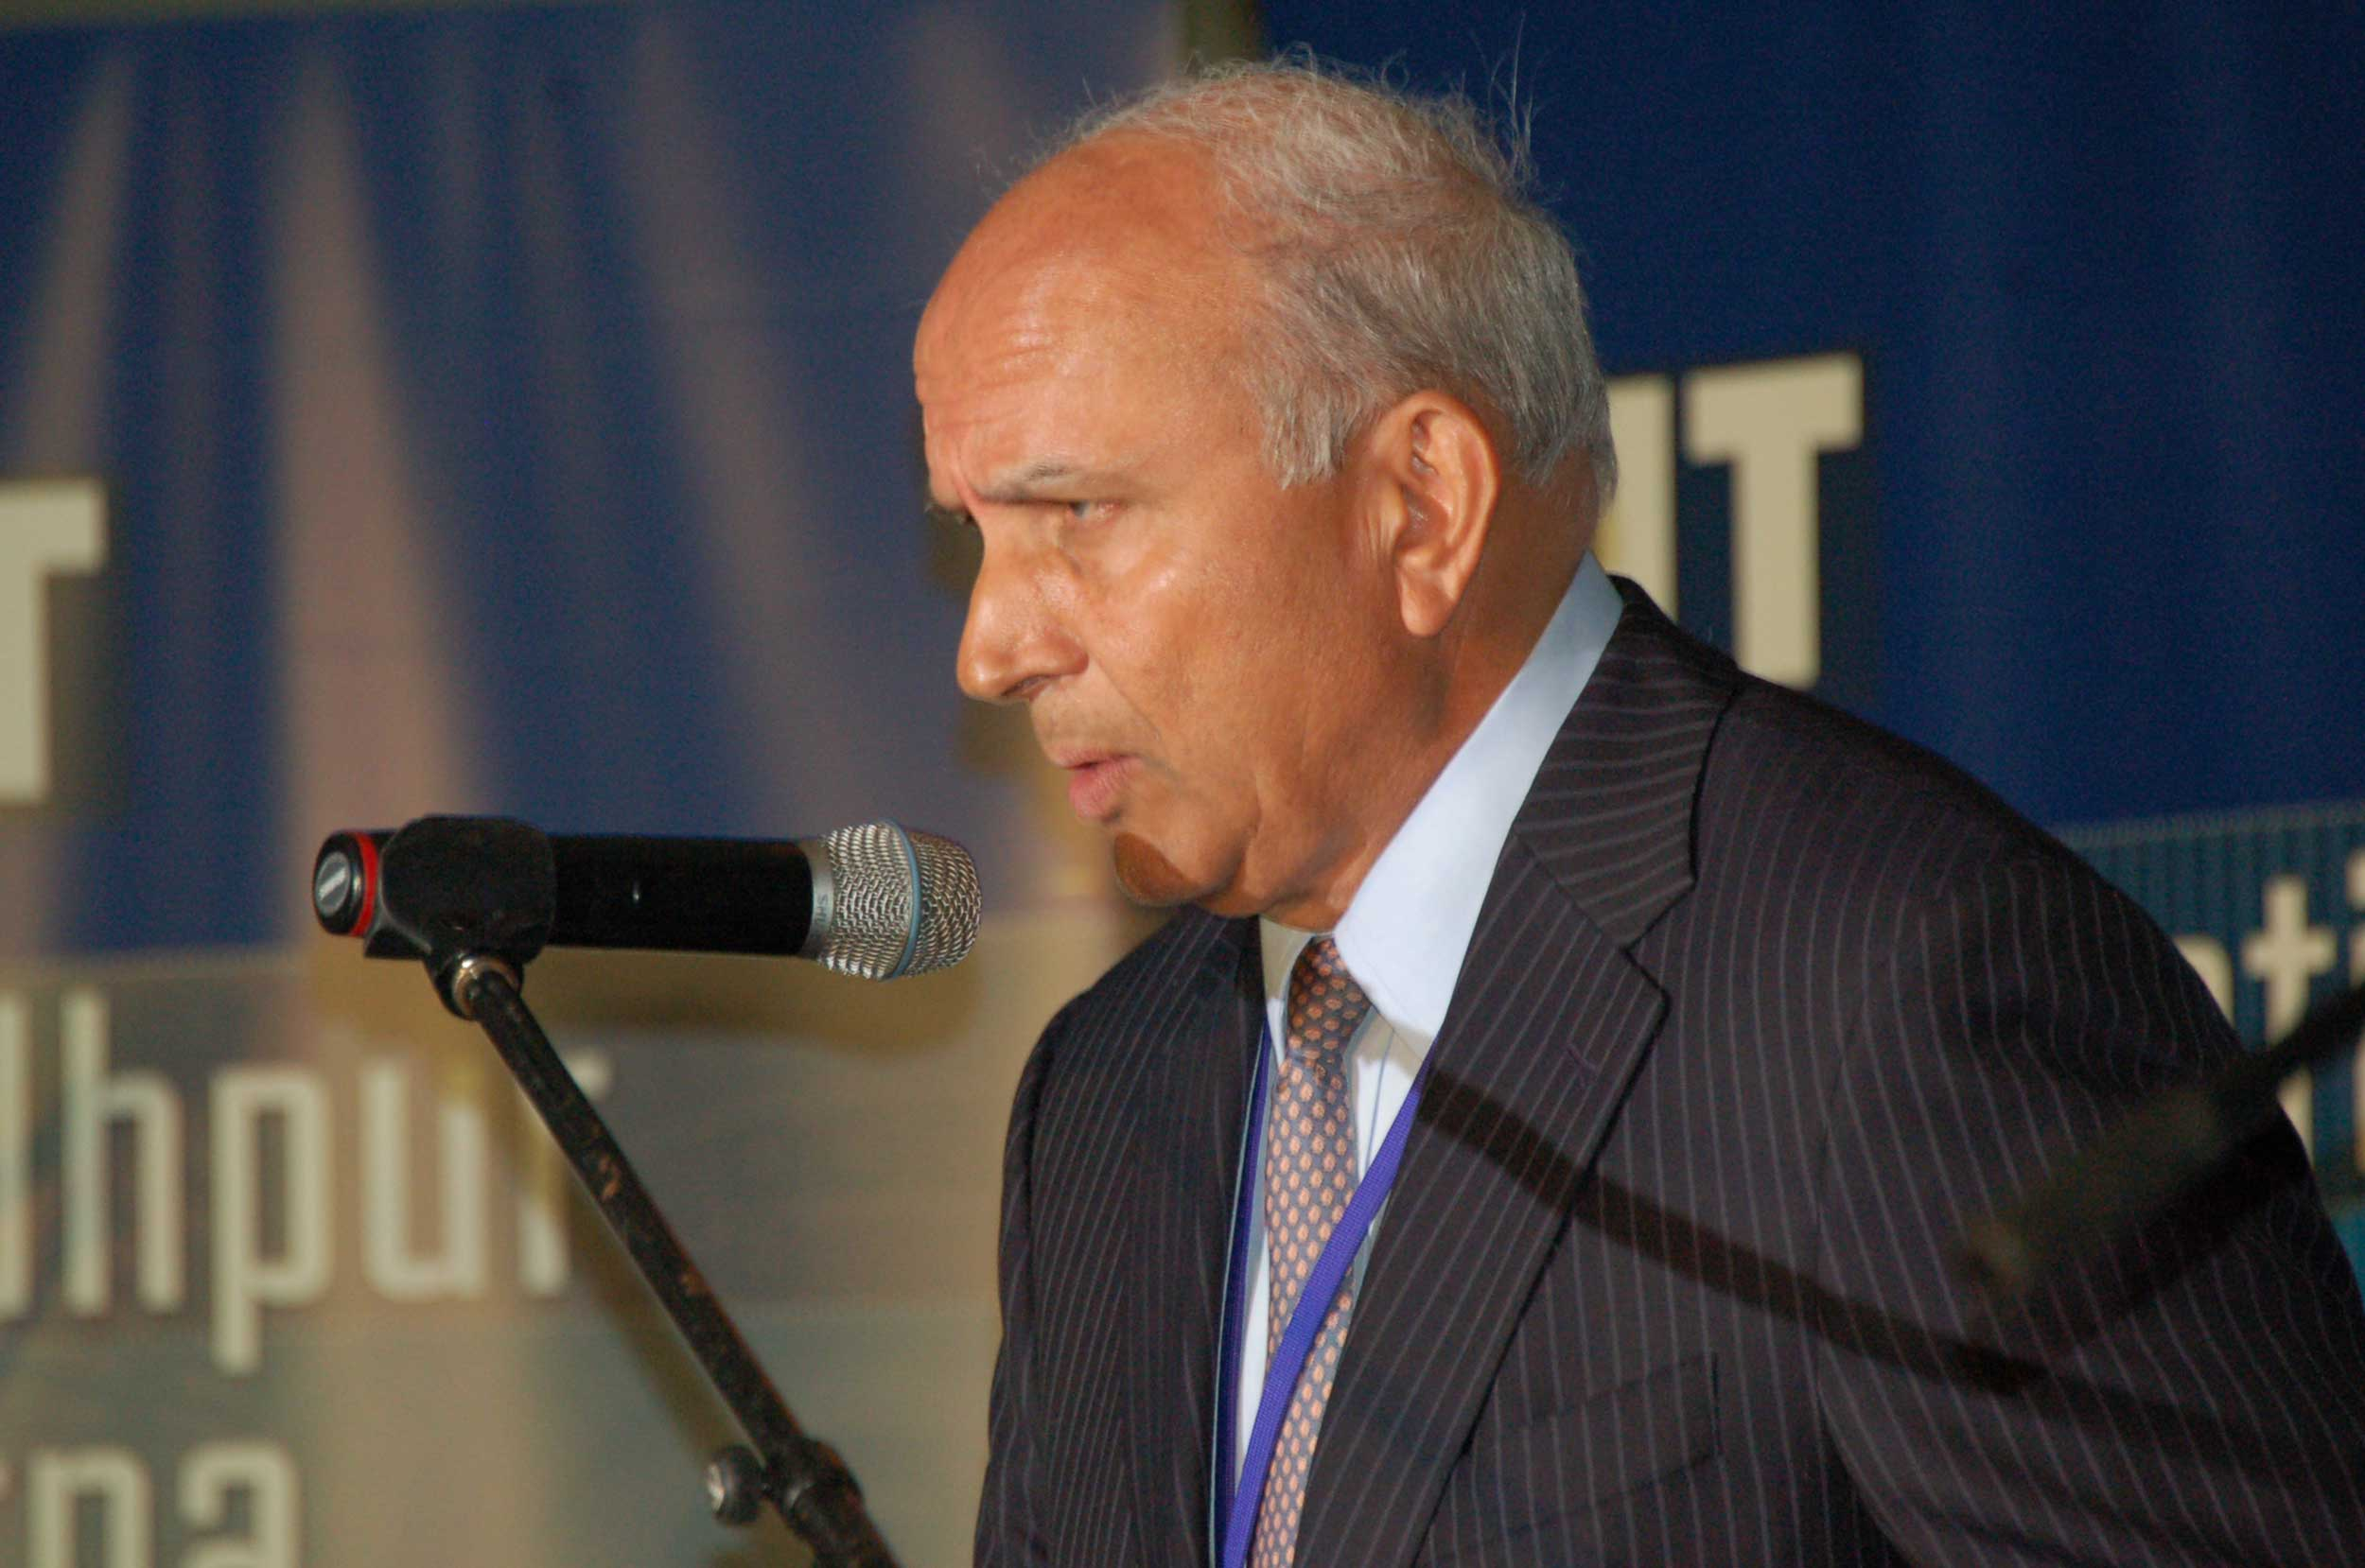 CSB, backed by Prem Watsa's (in picture) Fairfax, is looking at 2 methods to list its shares at the bourses — direct listing wherein all the shares become tradeable without the need of an IPO or alternatively a new issue offering if a direct listing does not find favour with the Sebi.